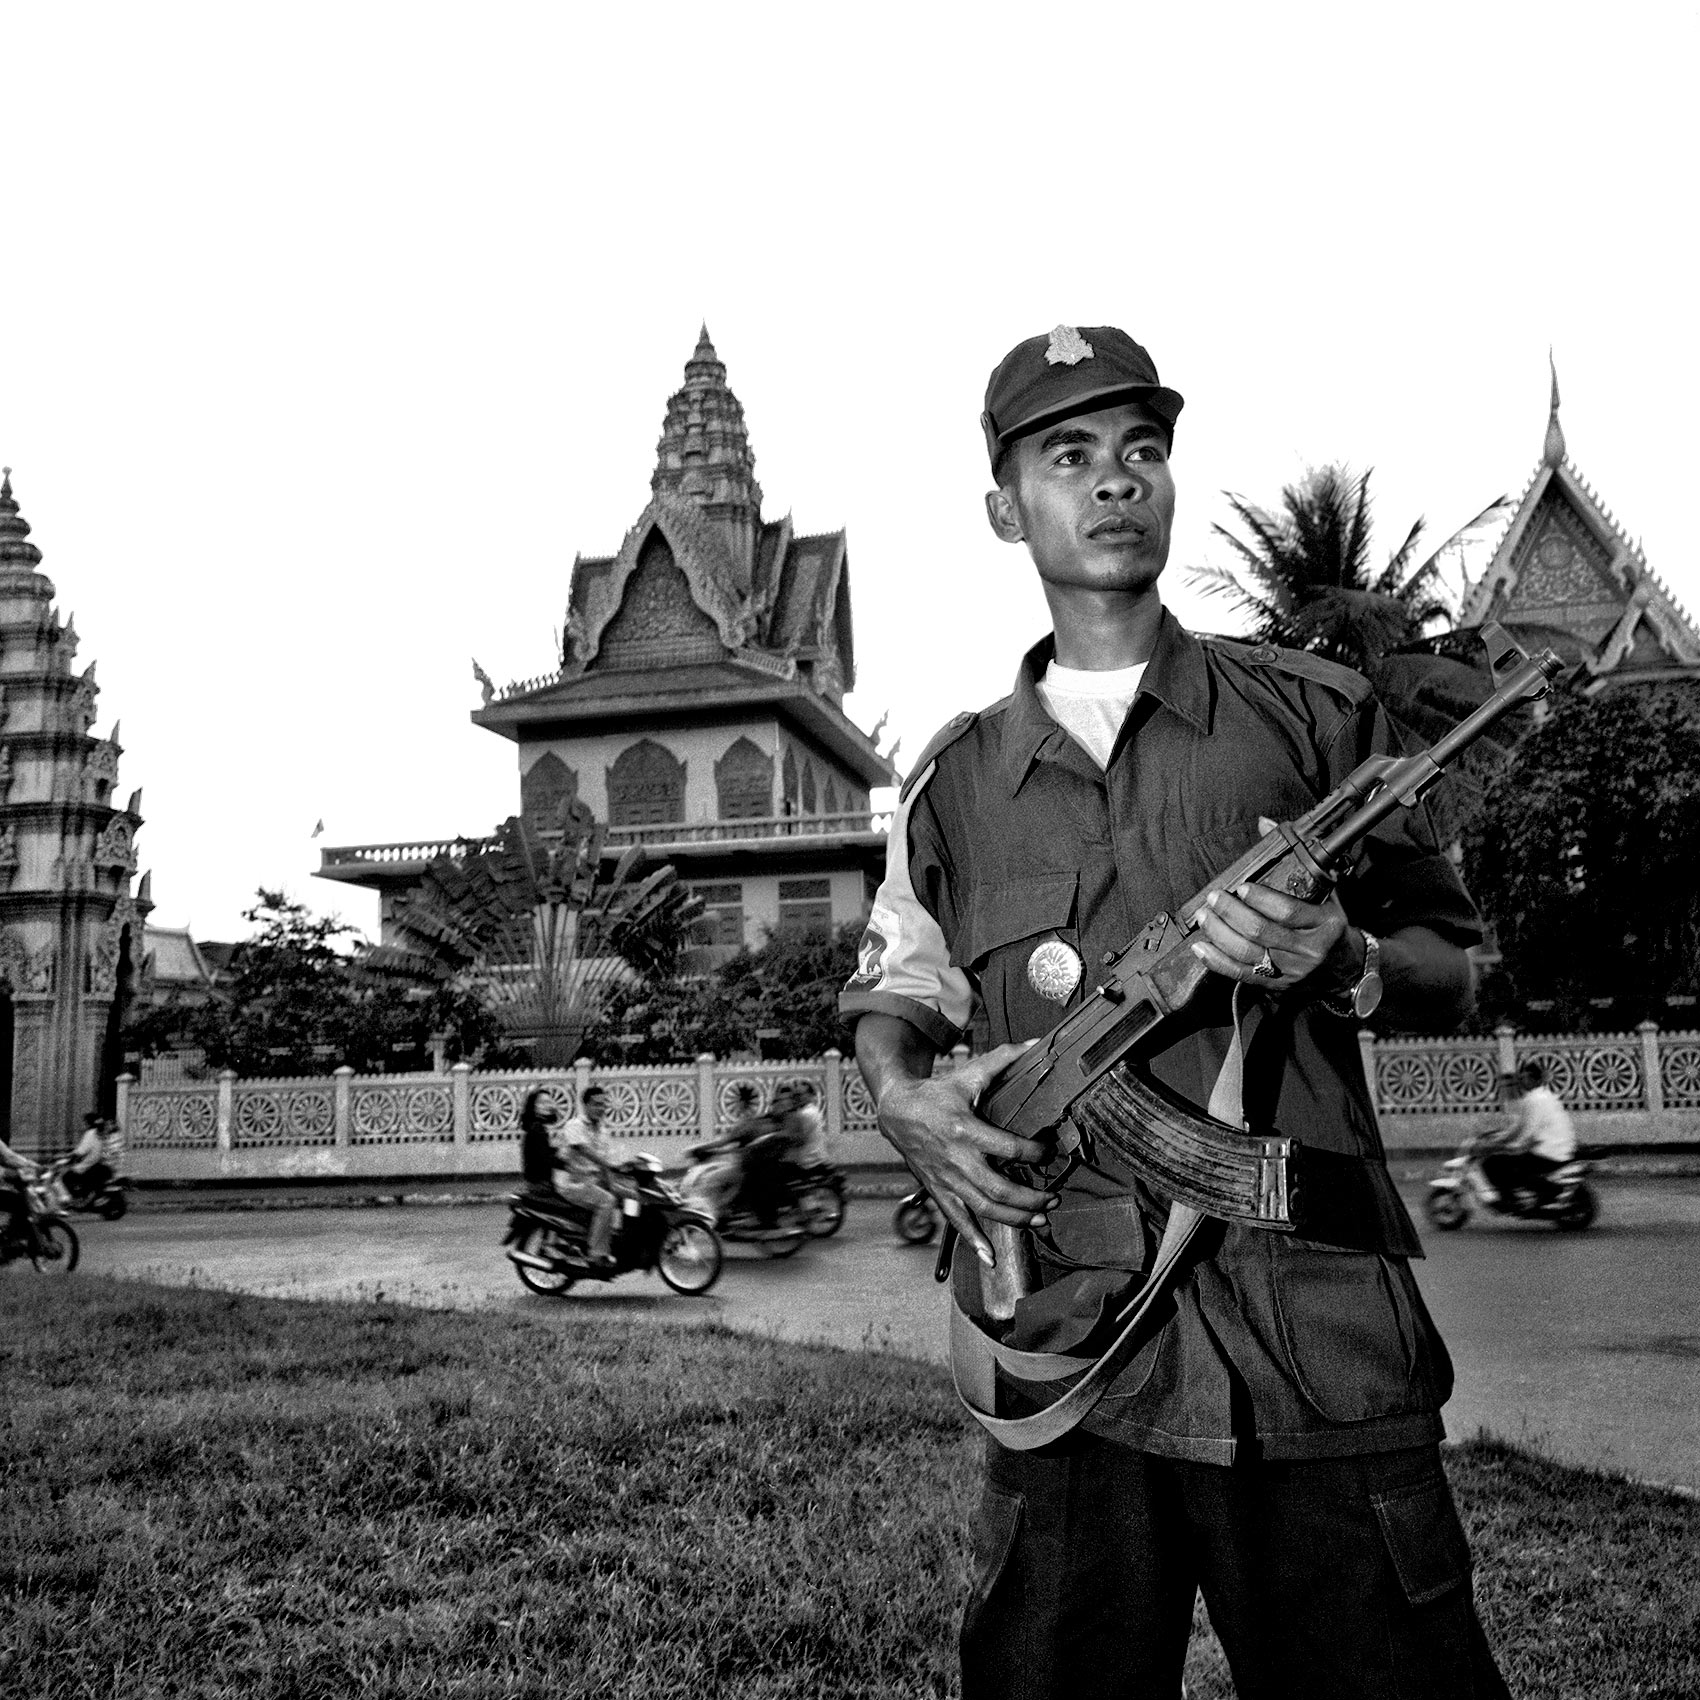 a-cambodian-soldier-holds-his-ak-47-as-patrols-the-streets-of-phnom-pehn-cambodia